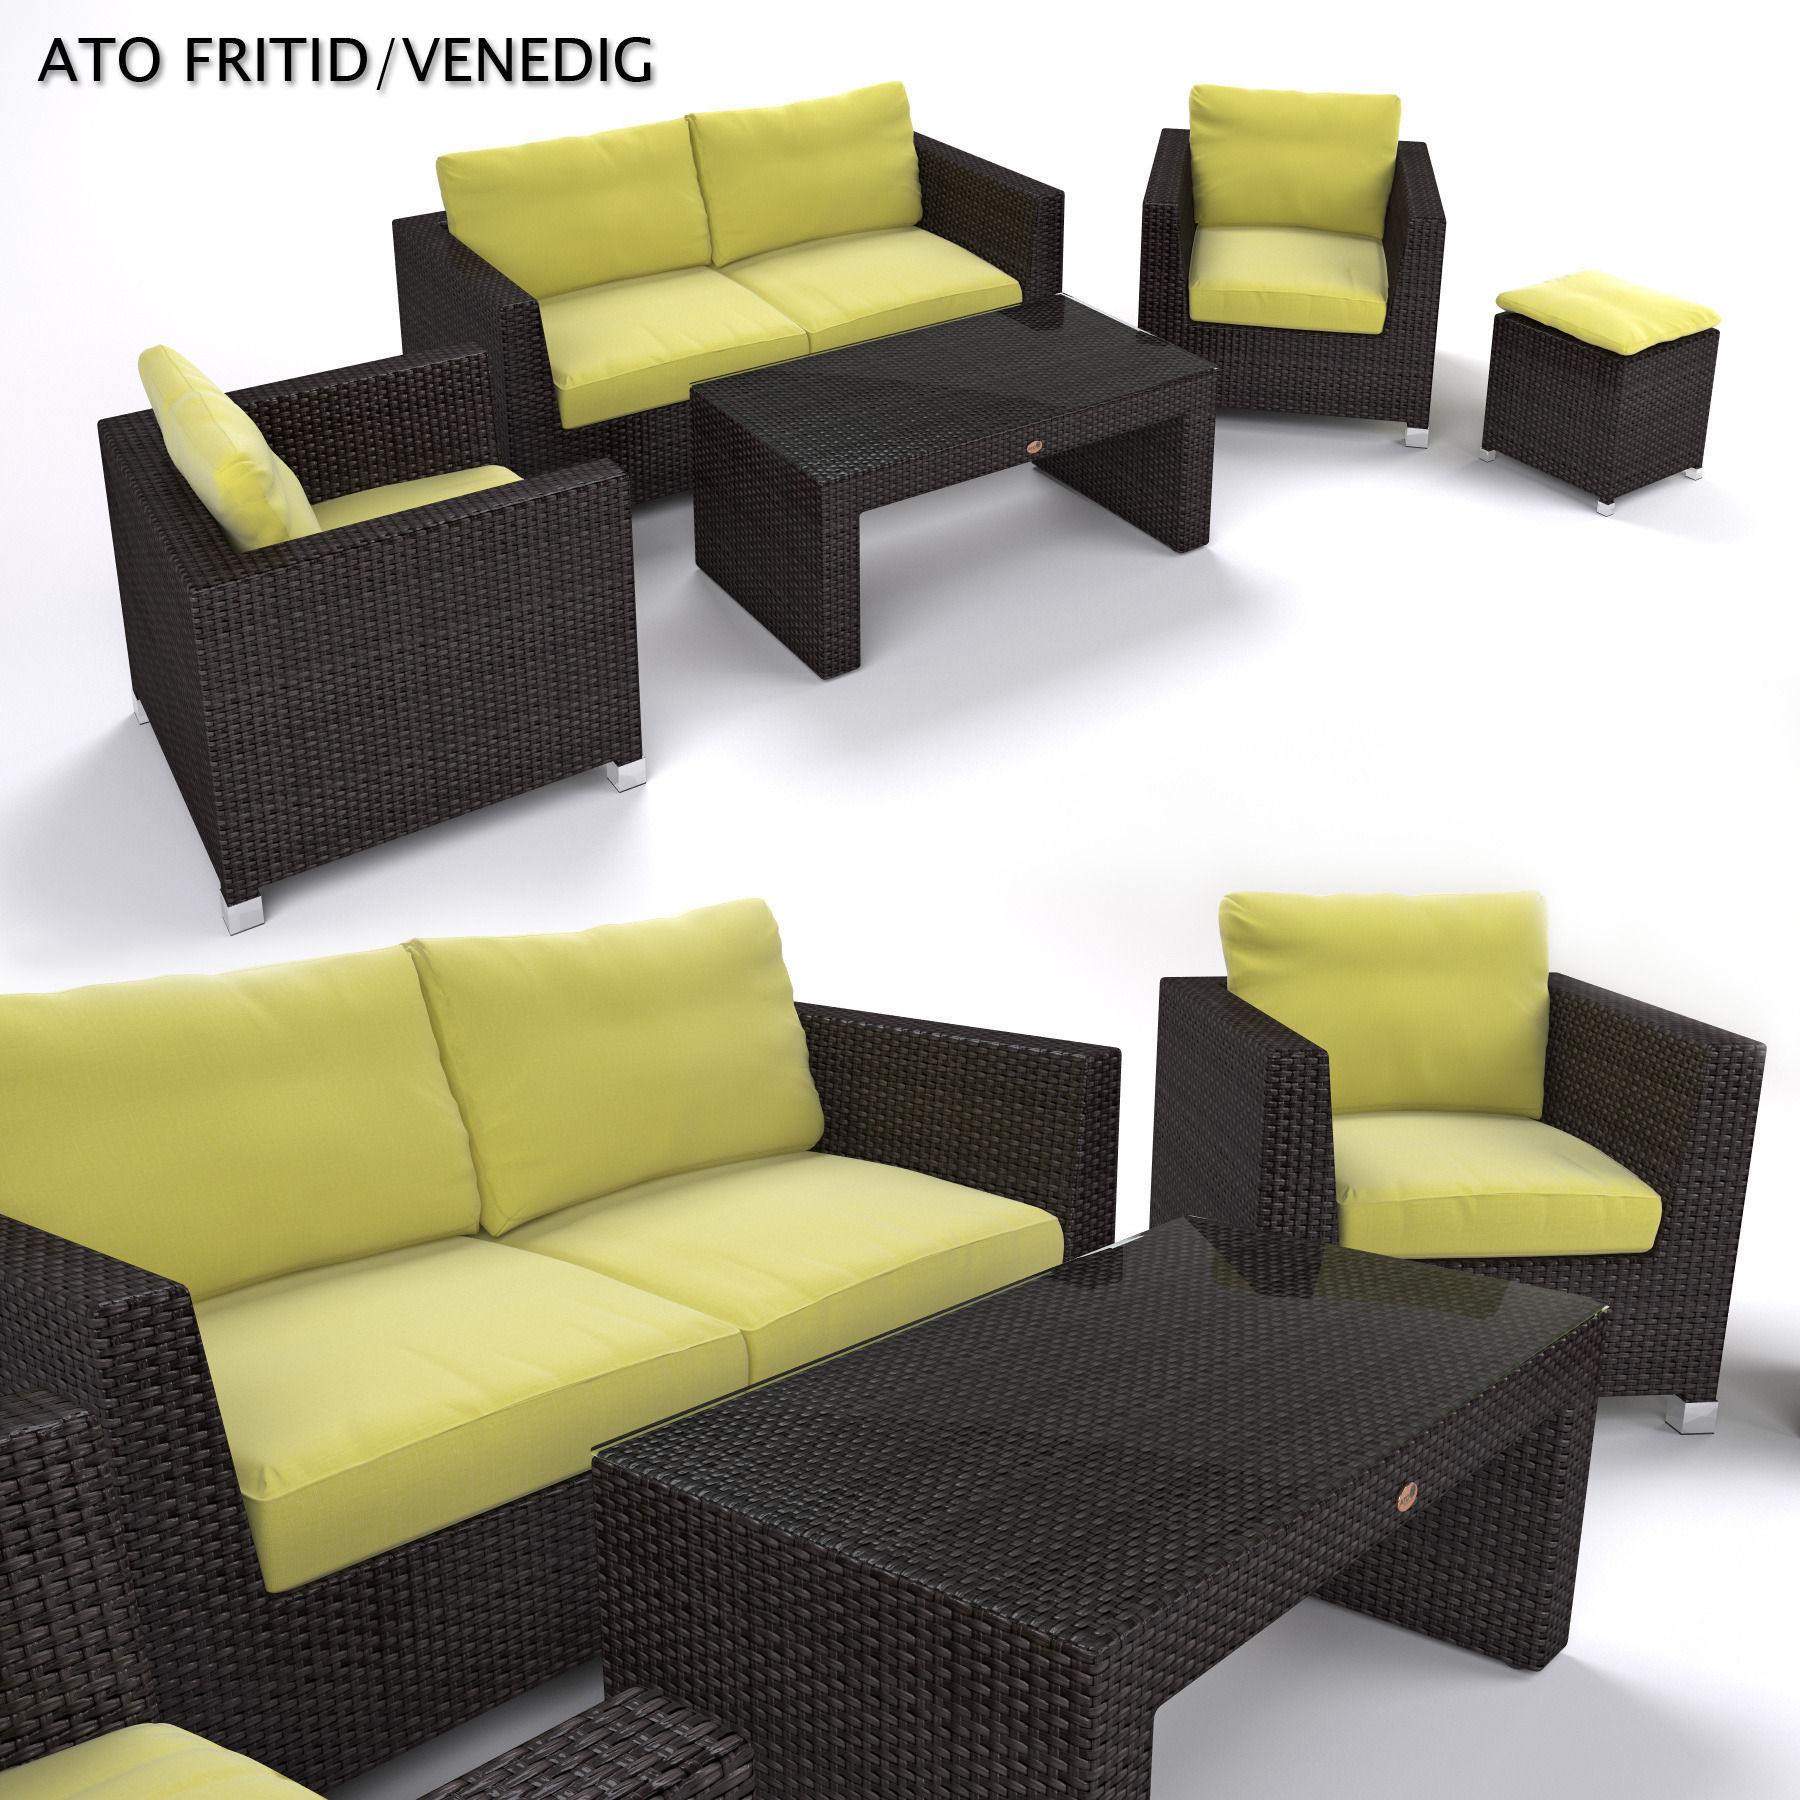 Garden Furniture   Synthetic Rattan Set   Ato Venedig 3d Model Max Obj Mtl  Fbx 1 ...